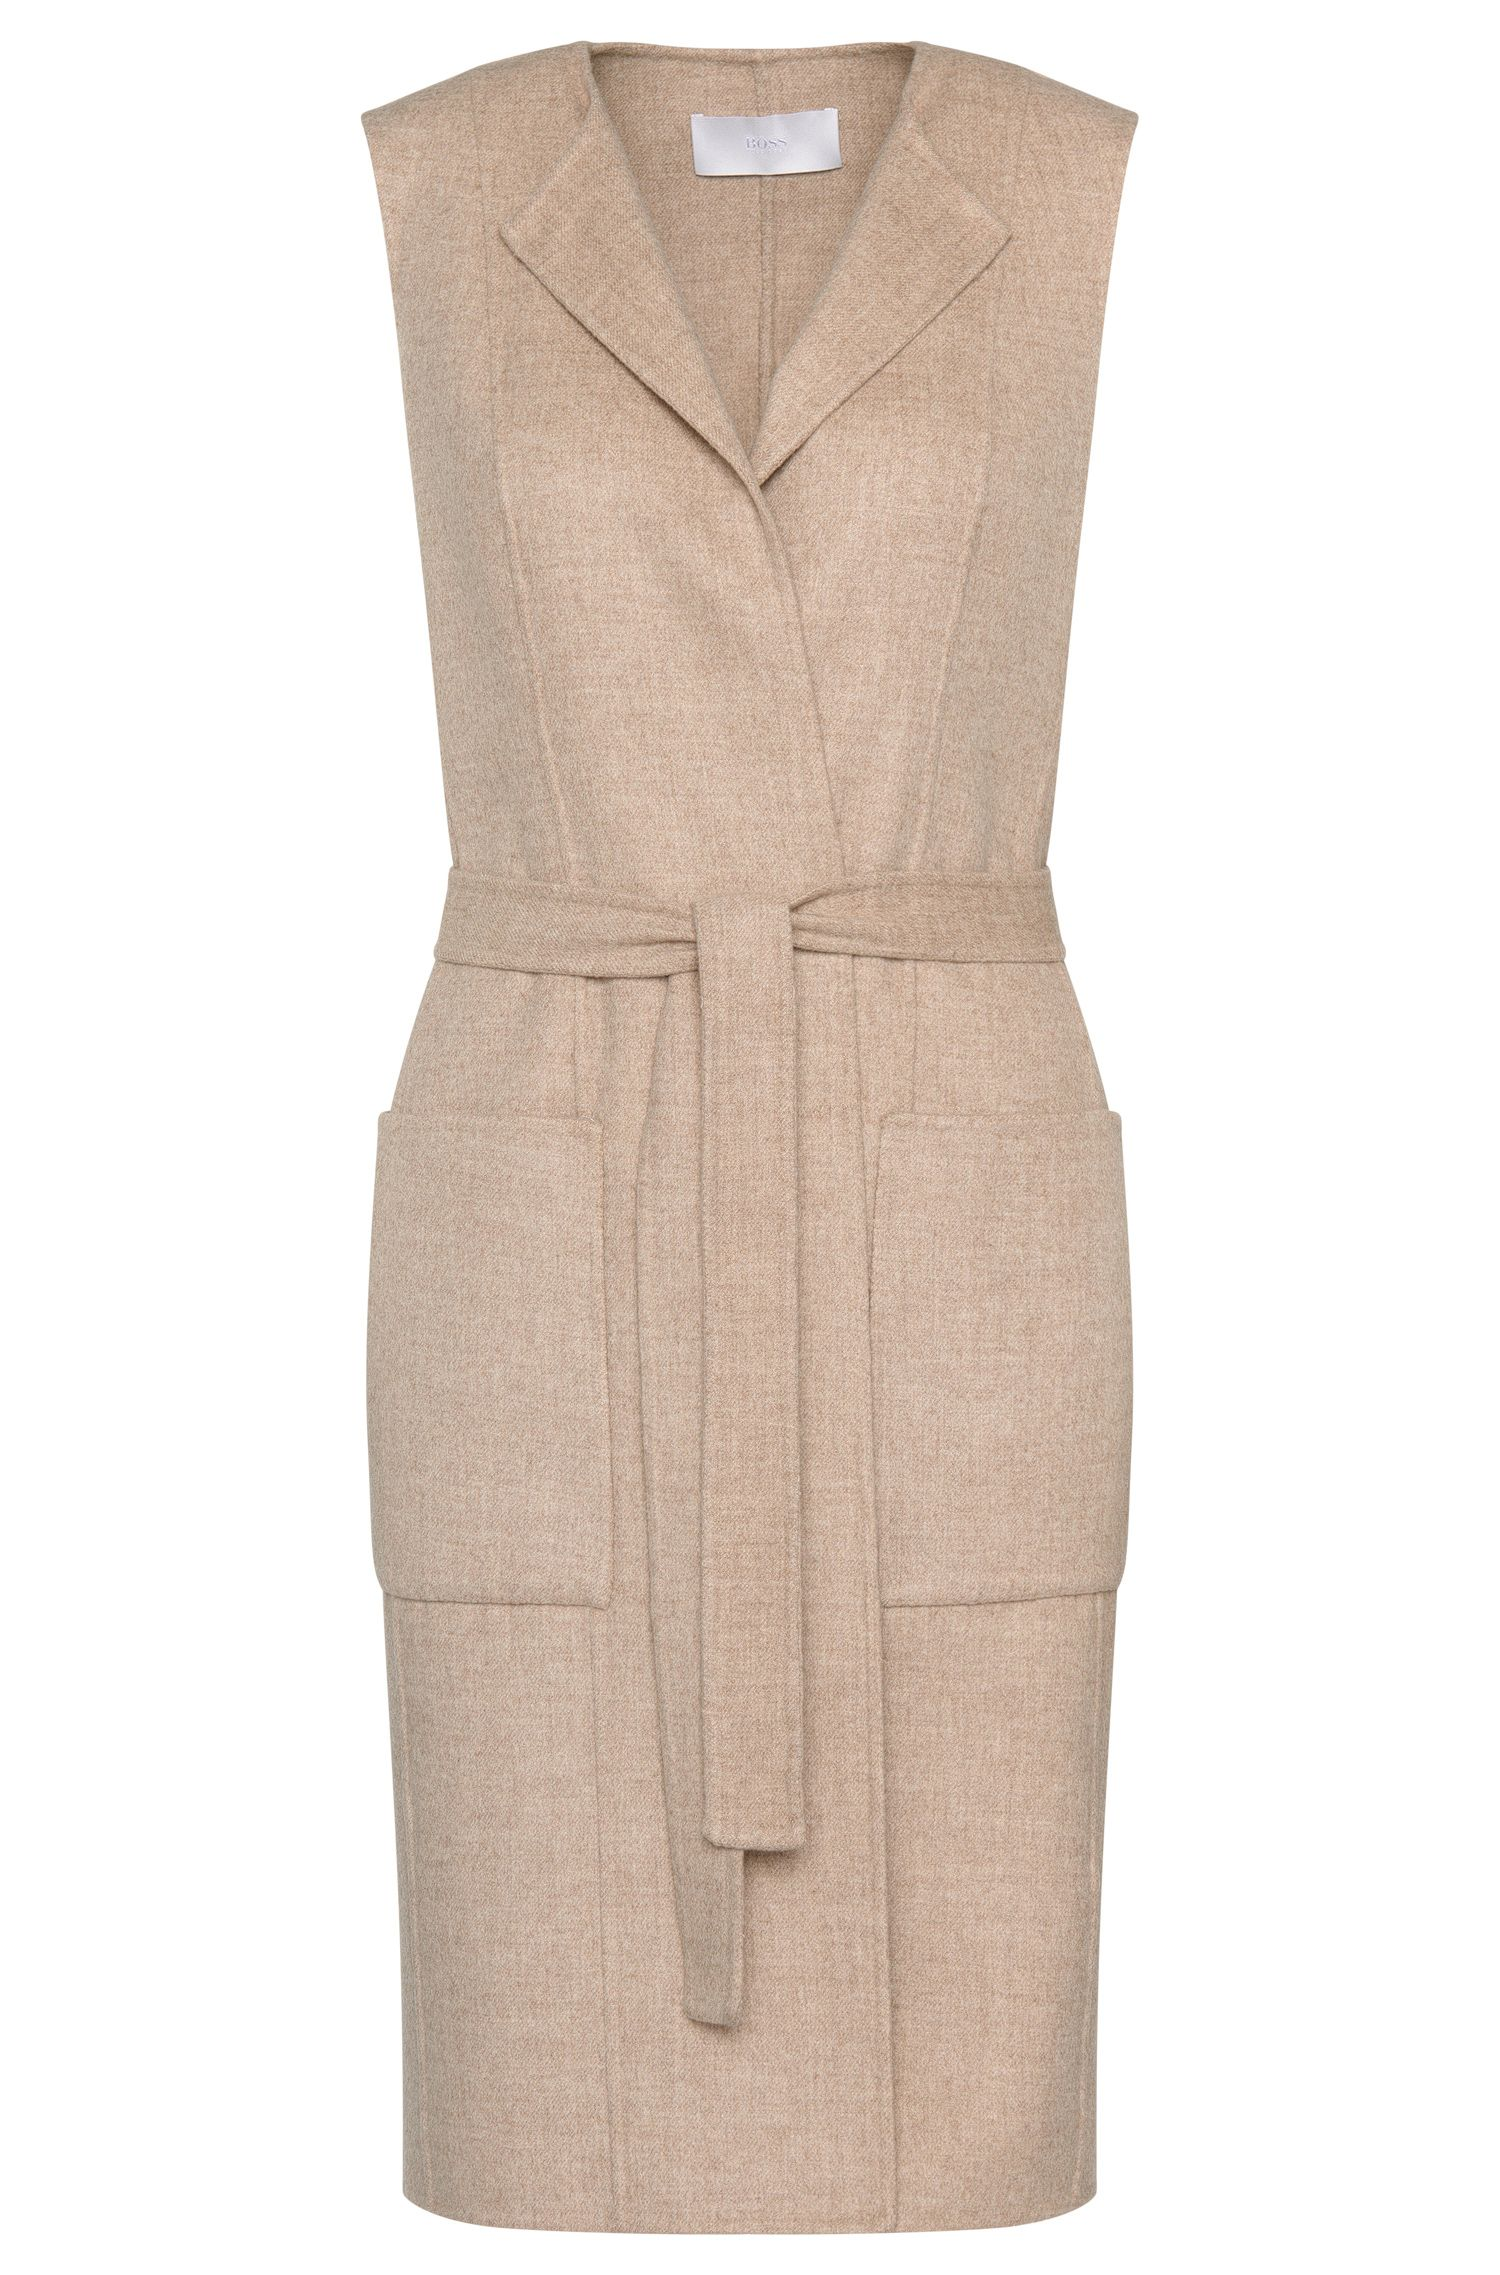 'Katsyna' | Wool Blend Open-Front Belted Long Vest